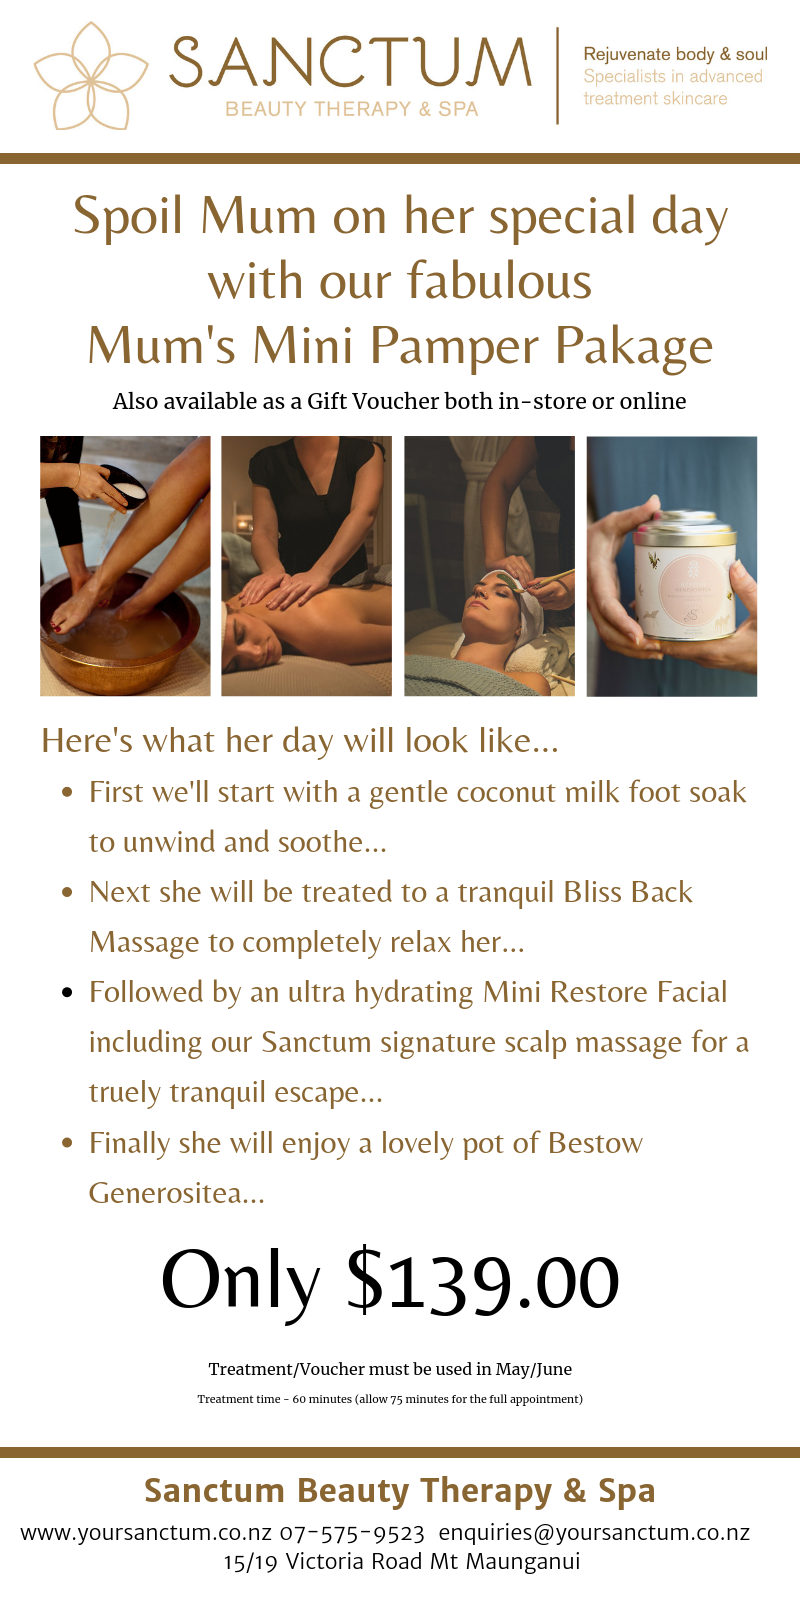 Spoil Mum on her special day with our fabulous Mum's Mini Pamper Pakage